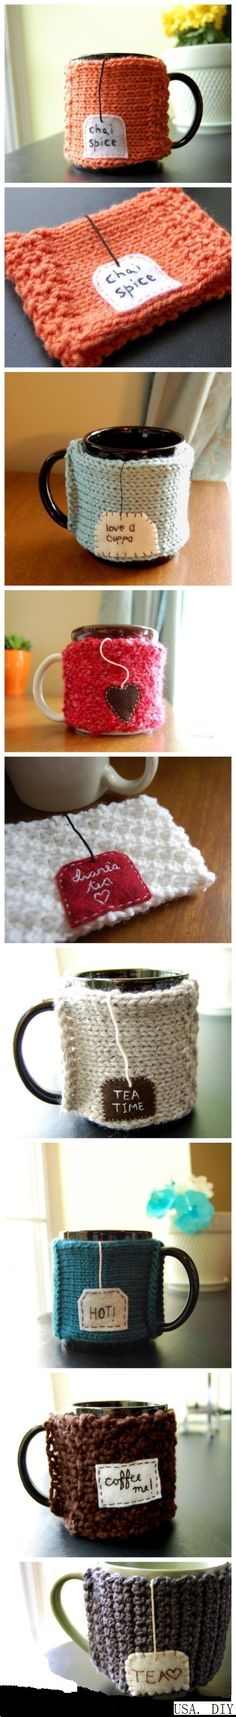 Such good ideas for cup cozies